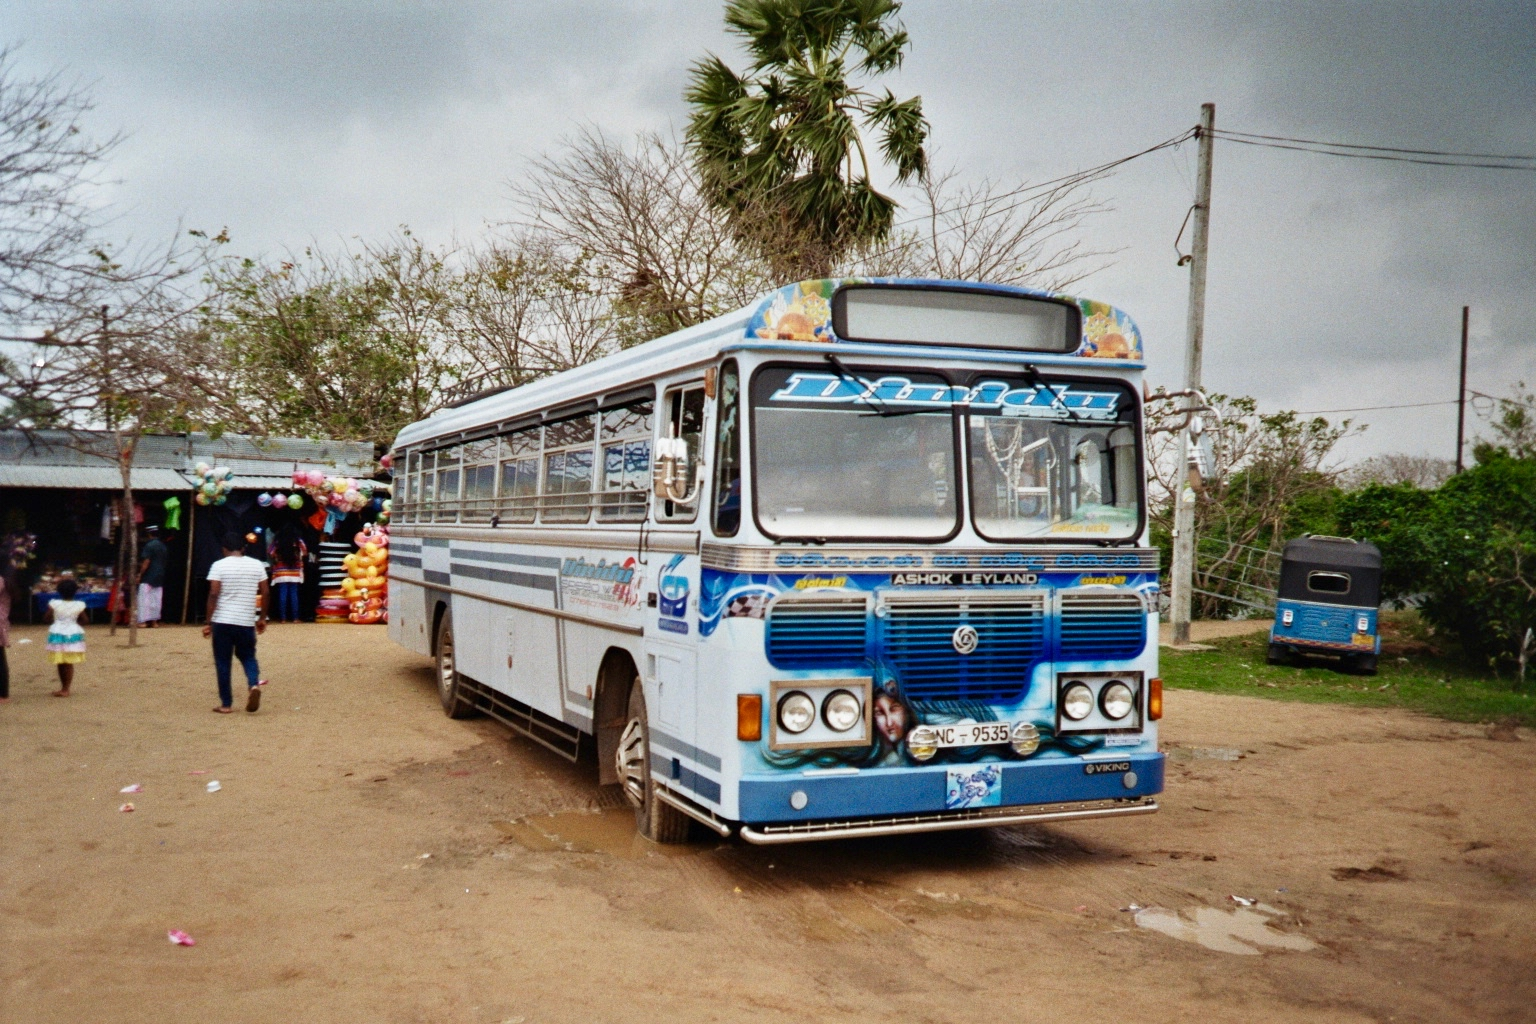 Sri Lanka analog - 69